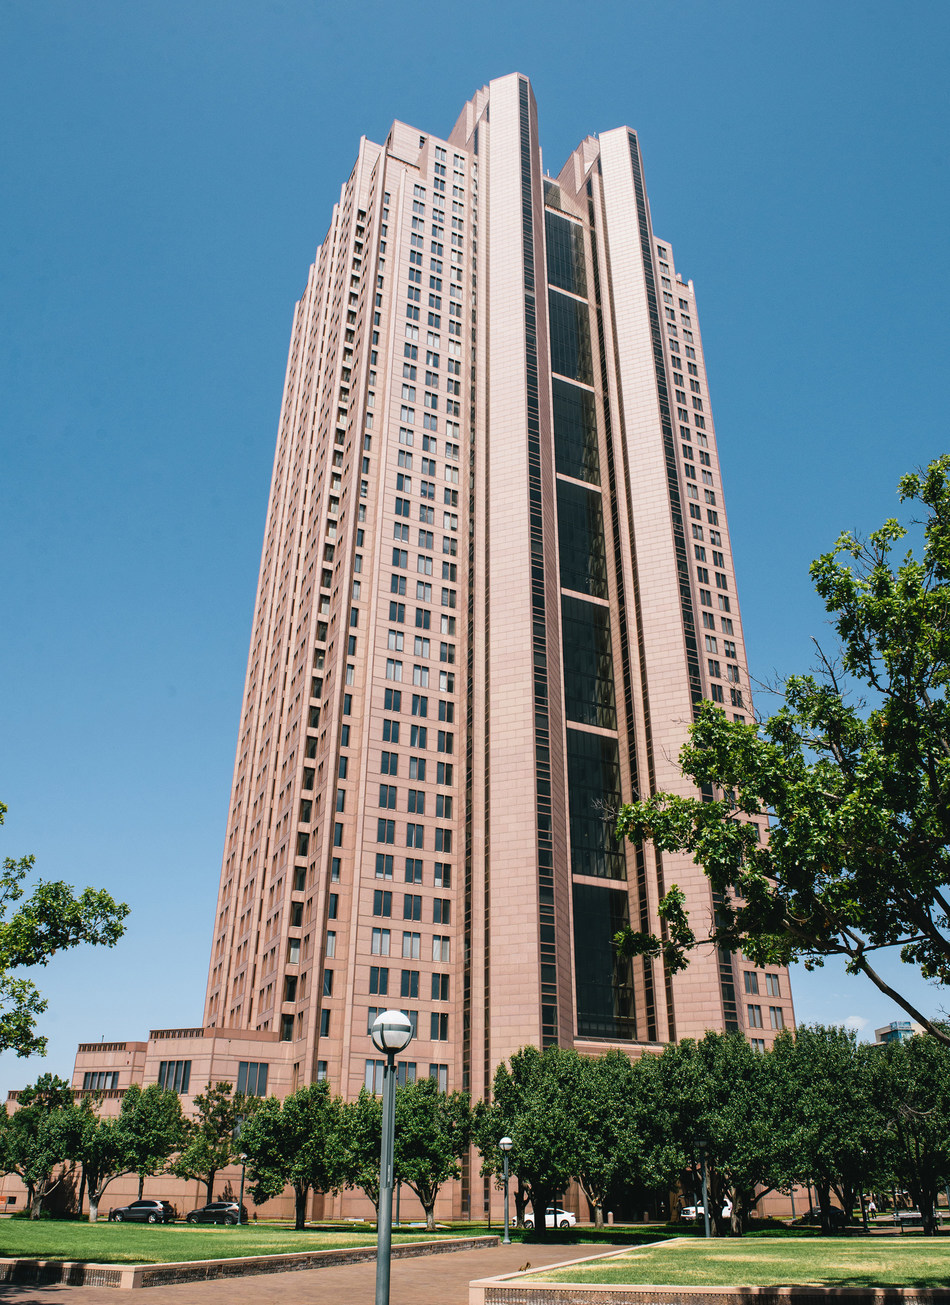 Cityplace Tower in Uptown Dallas will house a five-star hotel operated by IHG® (InterContinental Hotels Group). NexPoint, the affiliate of Highland Capital Management that acquired Cityplace Tower in 2018, has additional upgrades planned for the iconic building and surrounding acreage. The InterContinental® Hotels & Resorts branded luxury property is expected to open at Cityplace in 2022. | Photo: Matt McElligott/Matt McElligott Photography